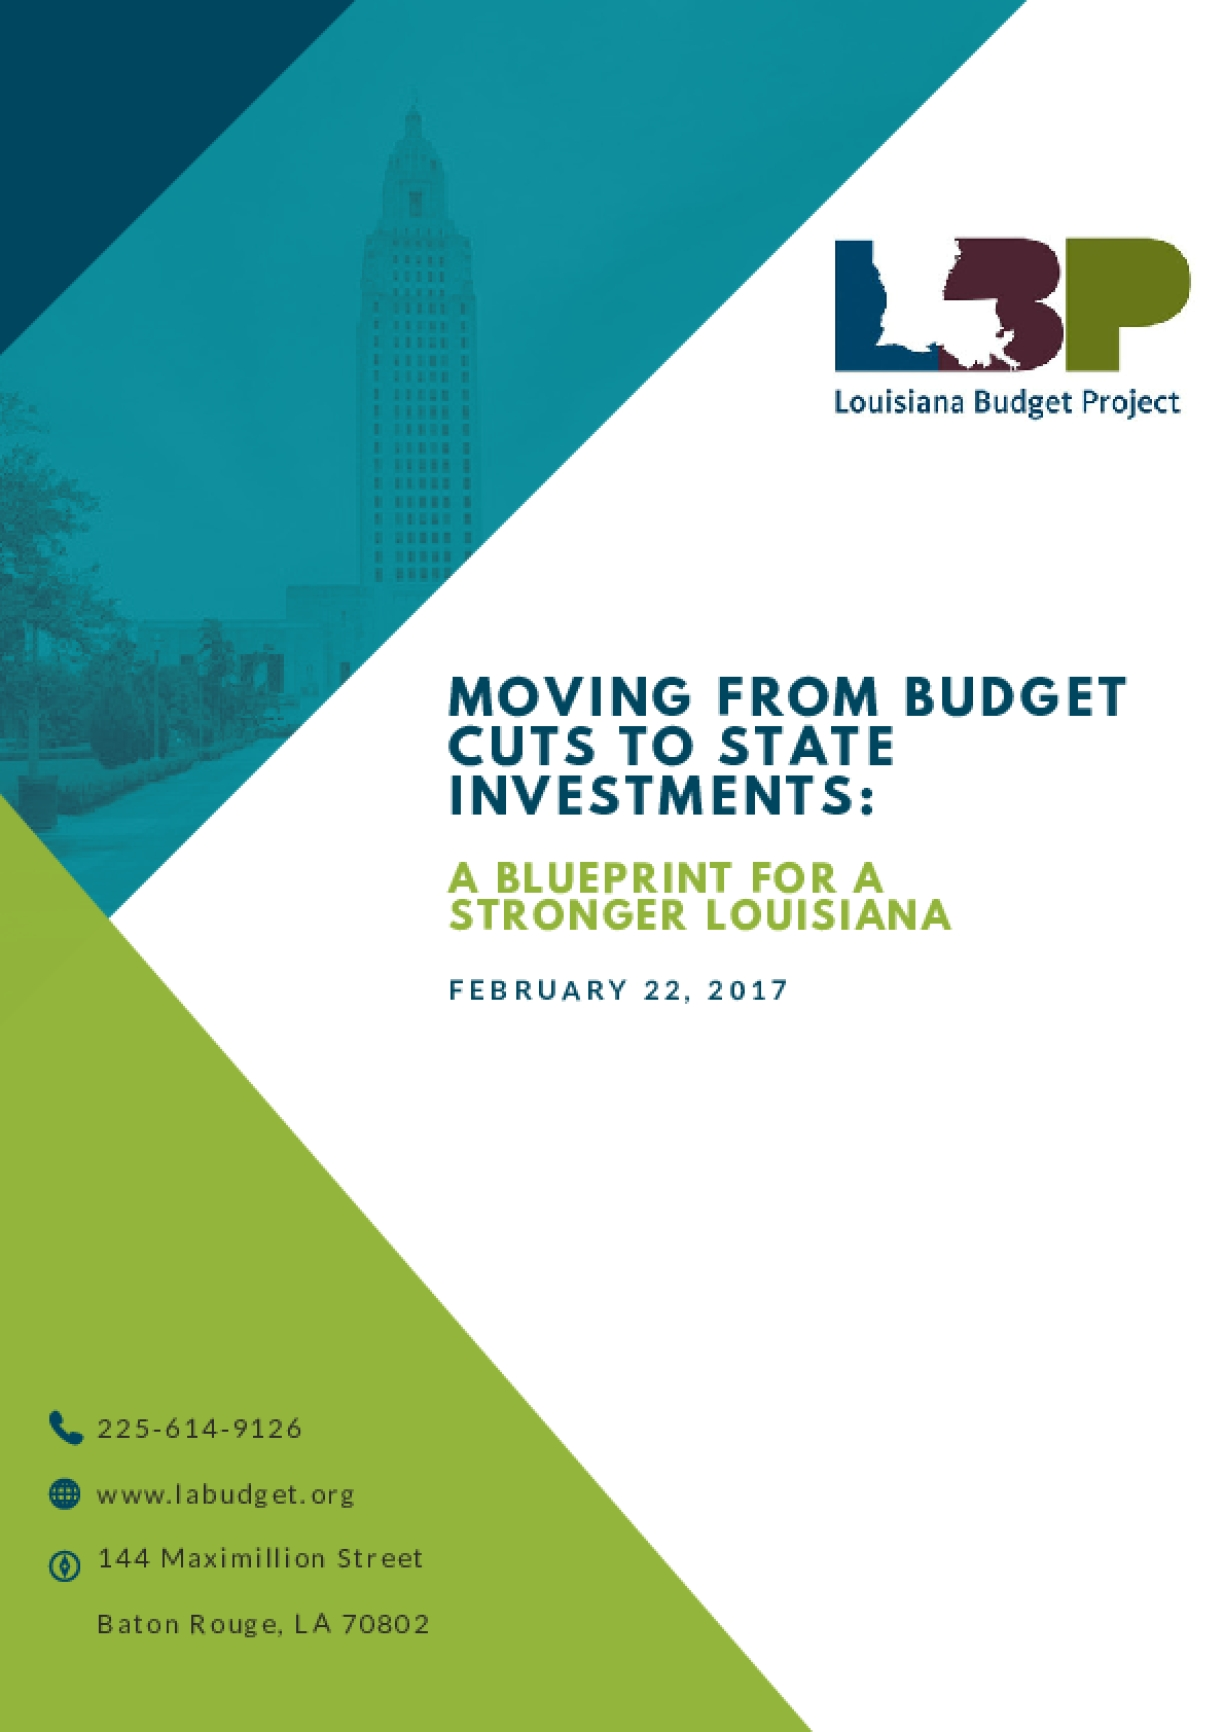 Moving From Budget Cuts to State Investments: A Blueprint for a Stronger Louisiana